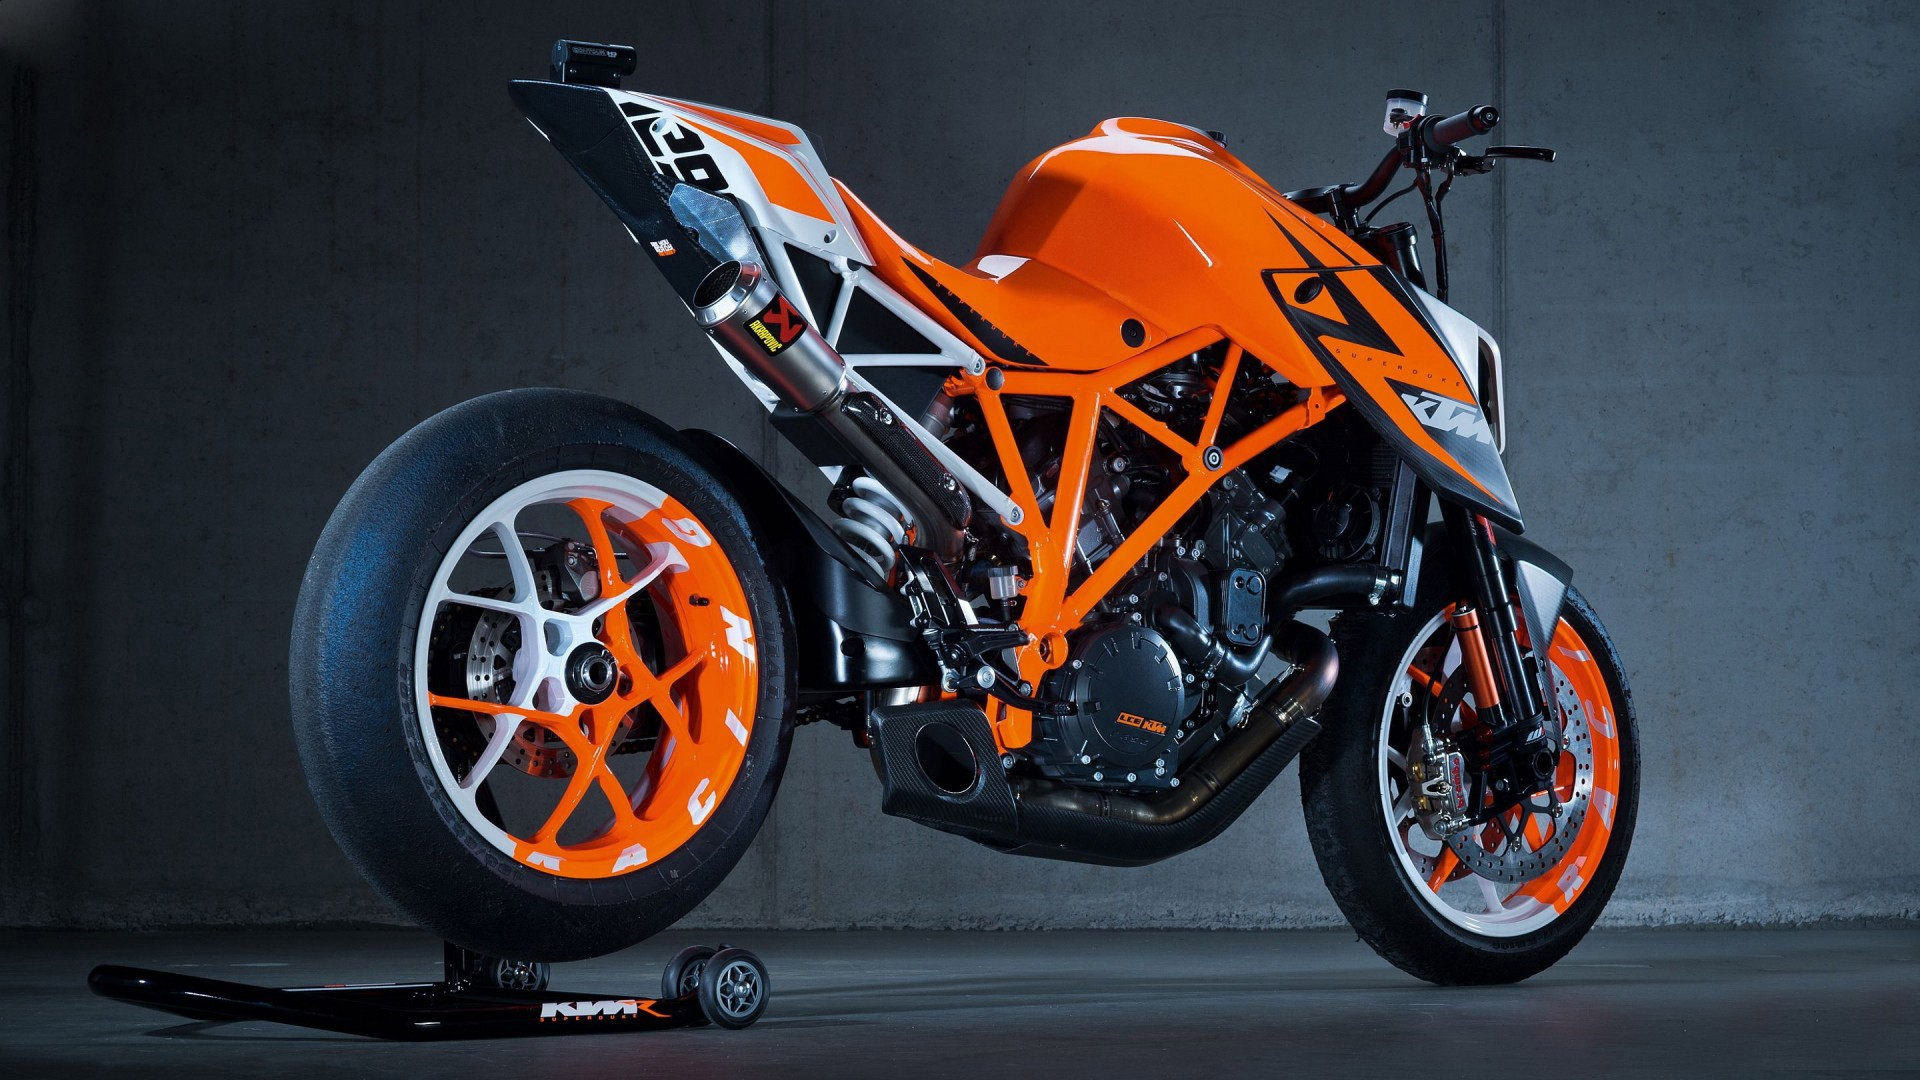 KTM-Super-Sport-Bike-1920%C3%971080-wallpaper-wpc5806608